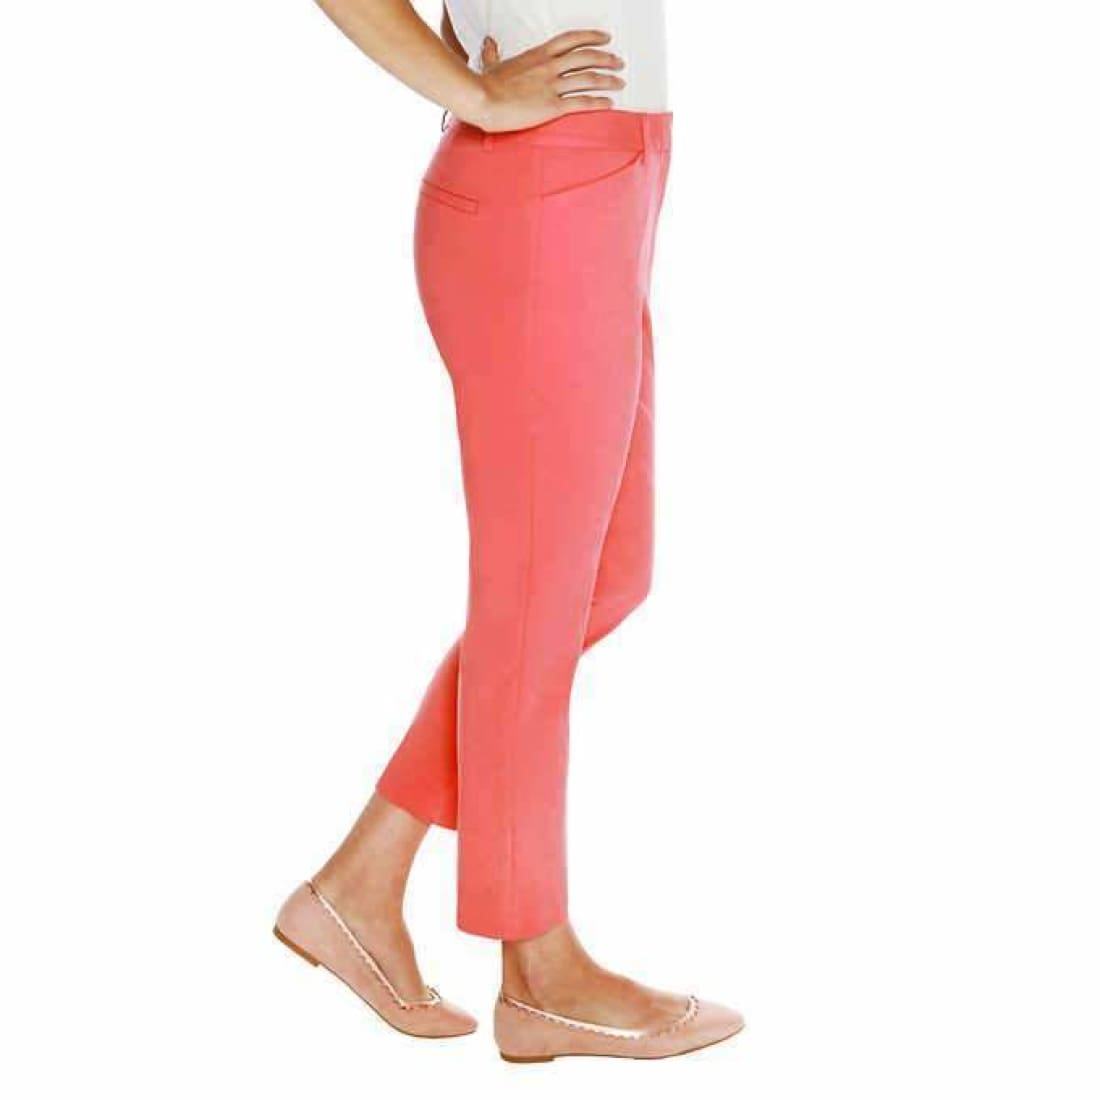 Mario Serrani Womens Comfort Stretch Slim Fit Ankle Length Pant Pants & Shorts